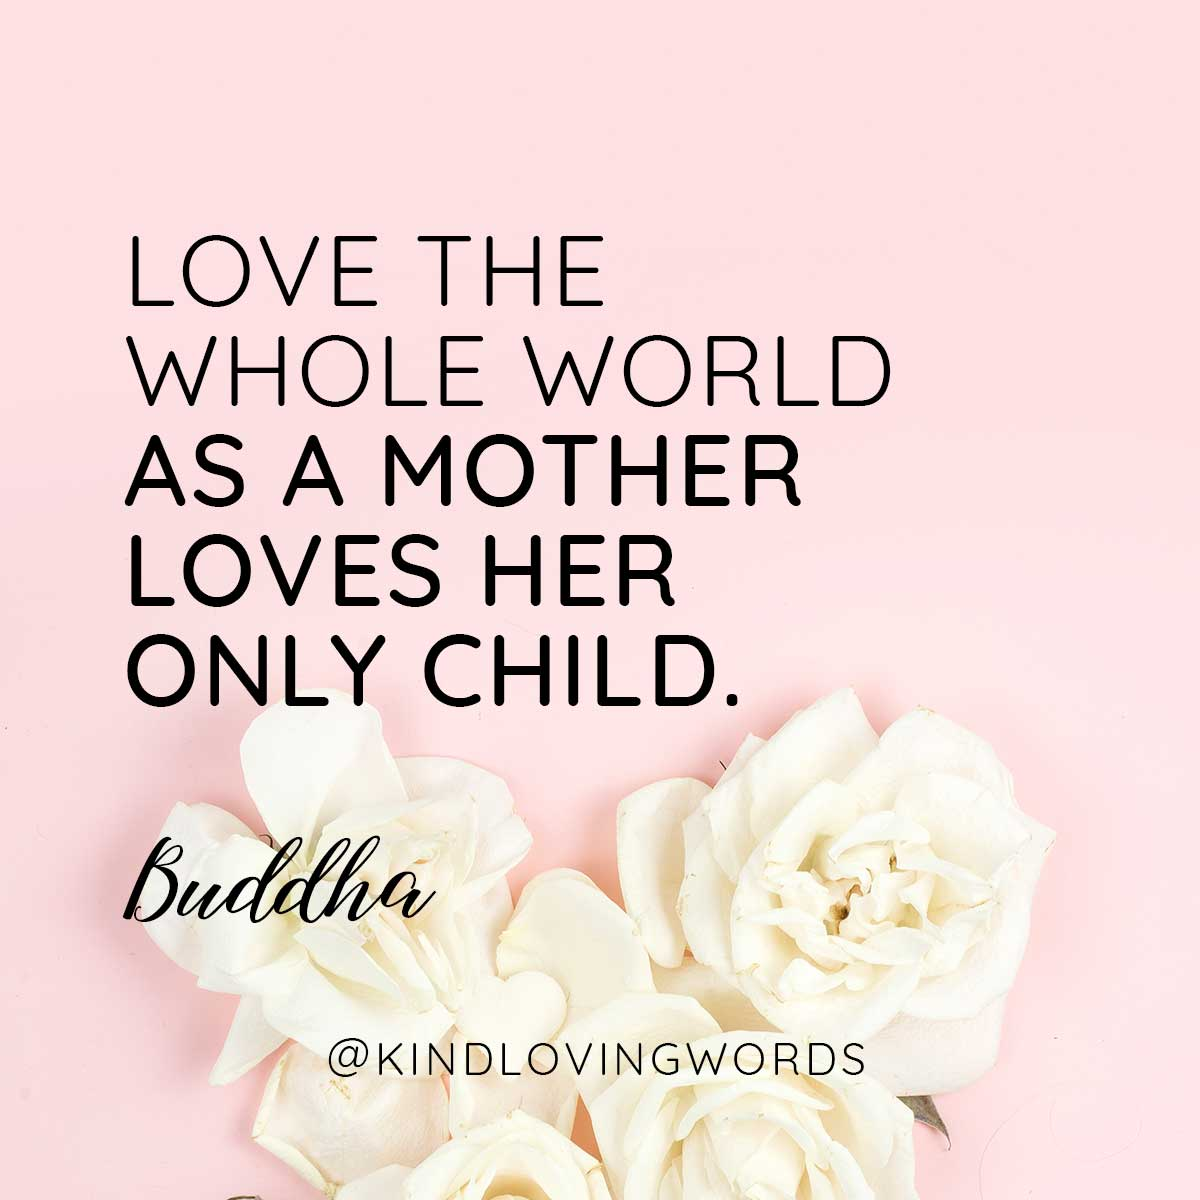 Love the wholeworld